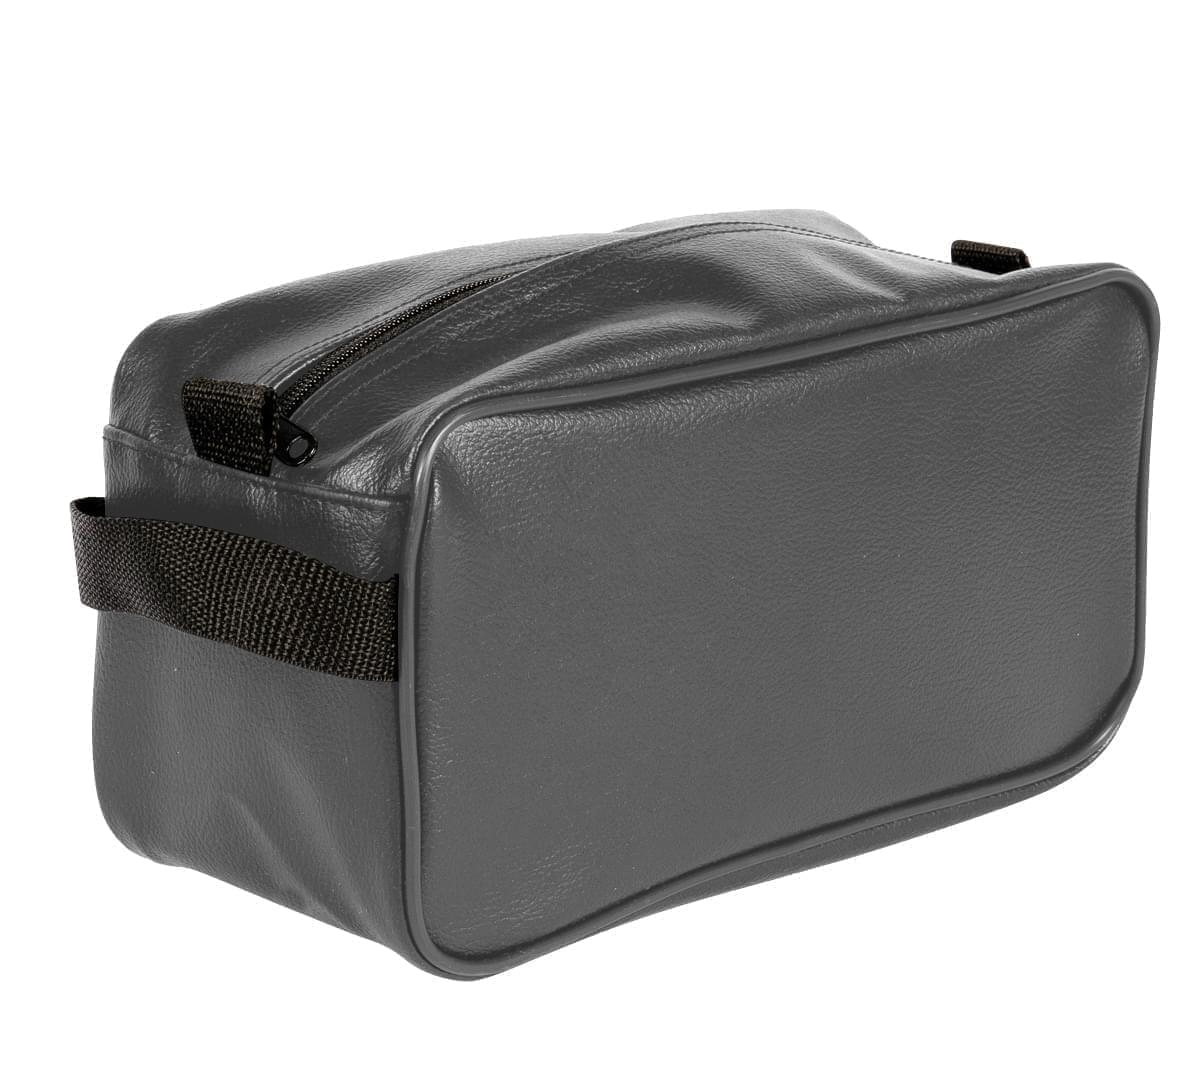 USA Made Cosmetic & Toiletry Cases, Graphite-Black, 3000996-ARR